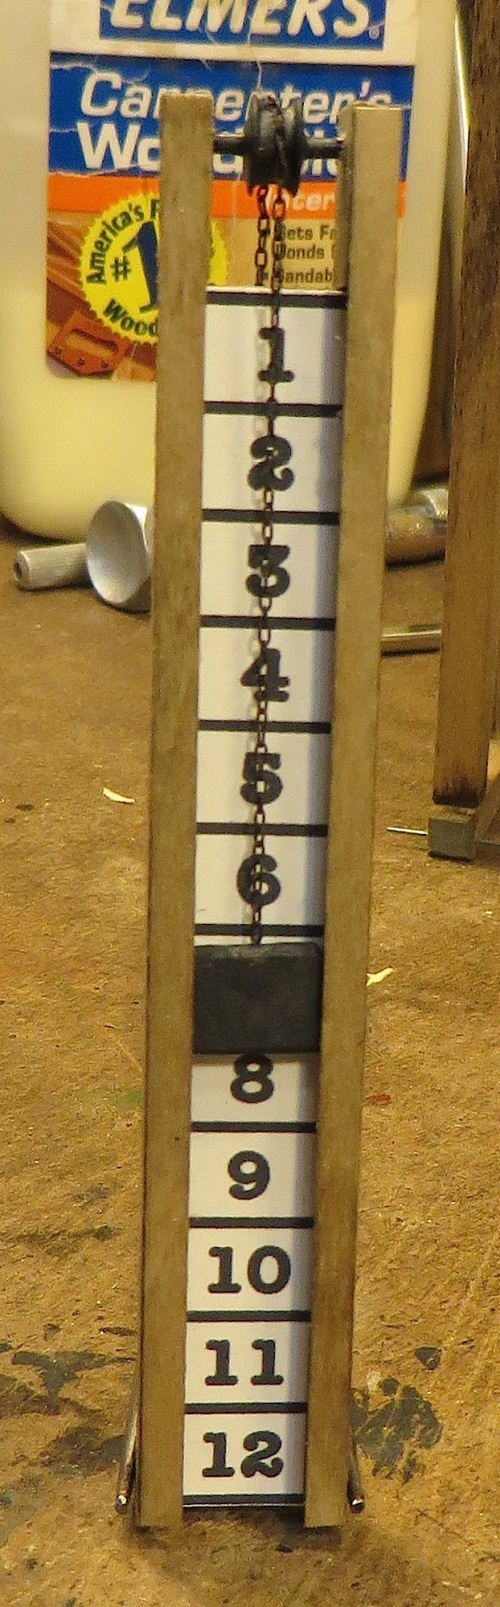 Here is the completed water level gauge.  The pulley at the top is made from an N scale wheel set. I cut it in half at the axle center, filed the axle points flat, and glued it back together with the wheels facing each other.